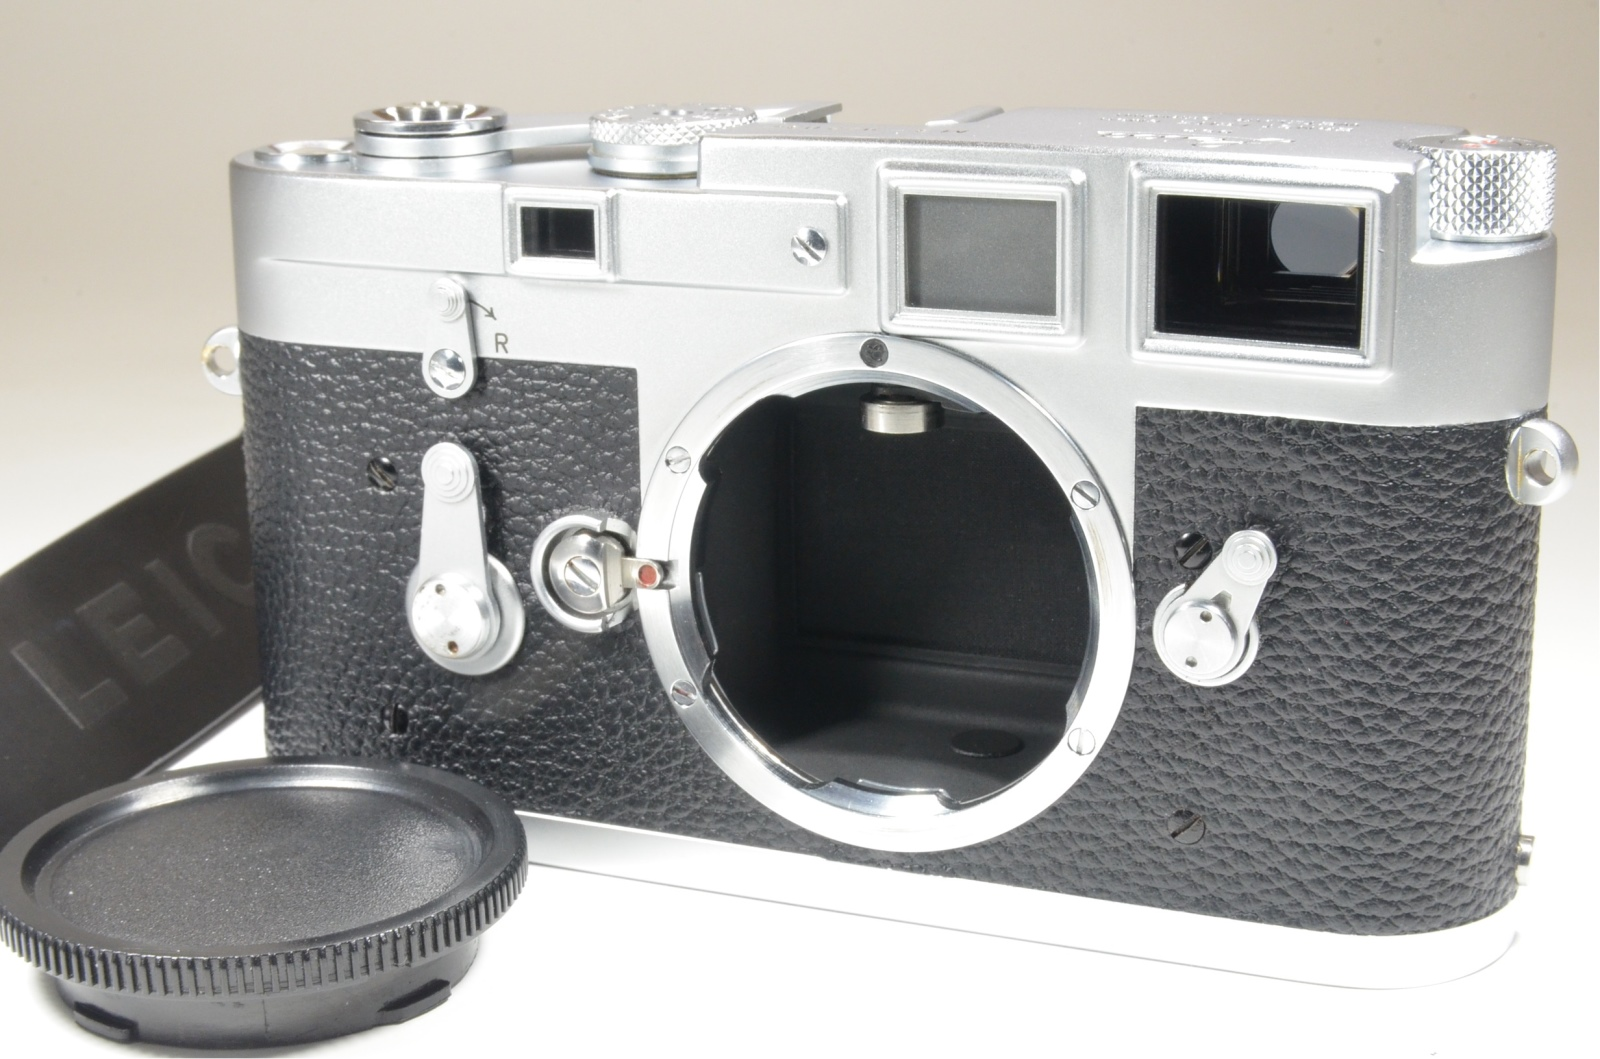 leica m3 single stroke s/n 972034 year 1959 with strap from japan